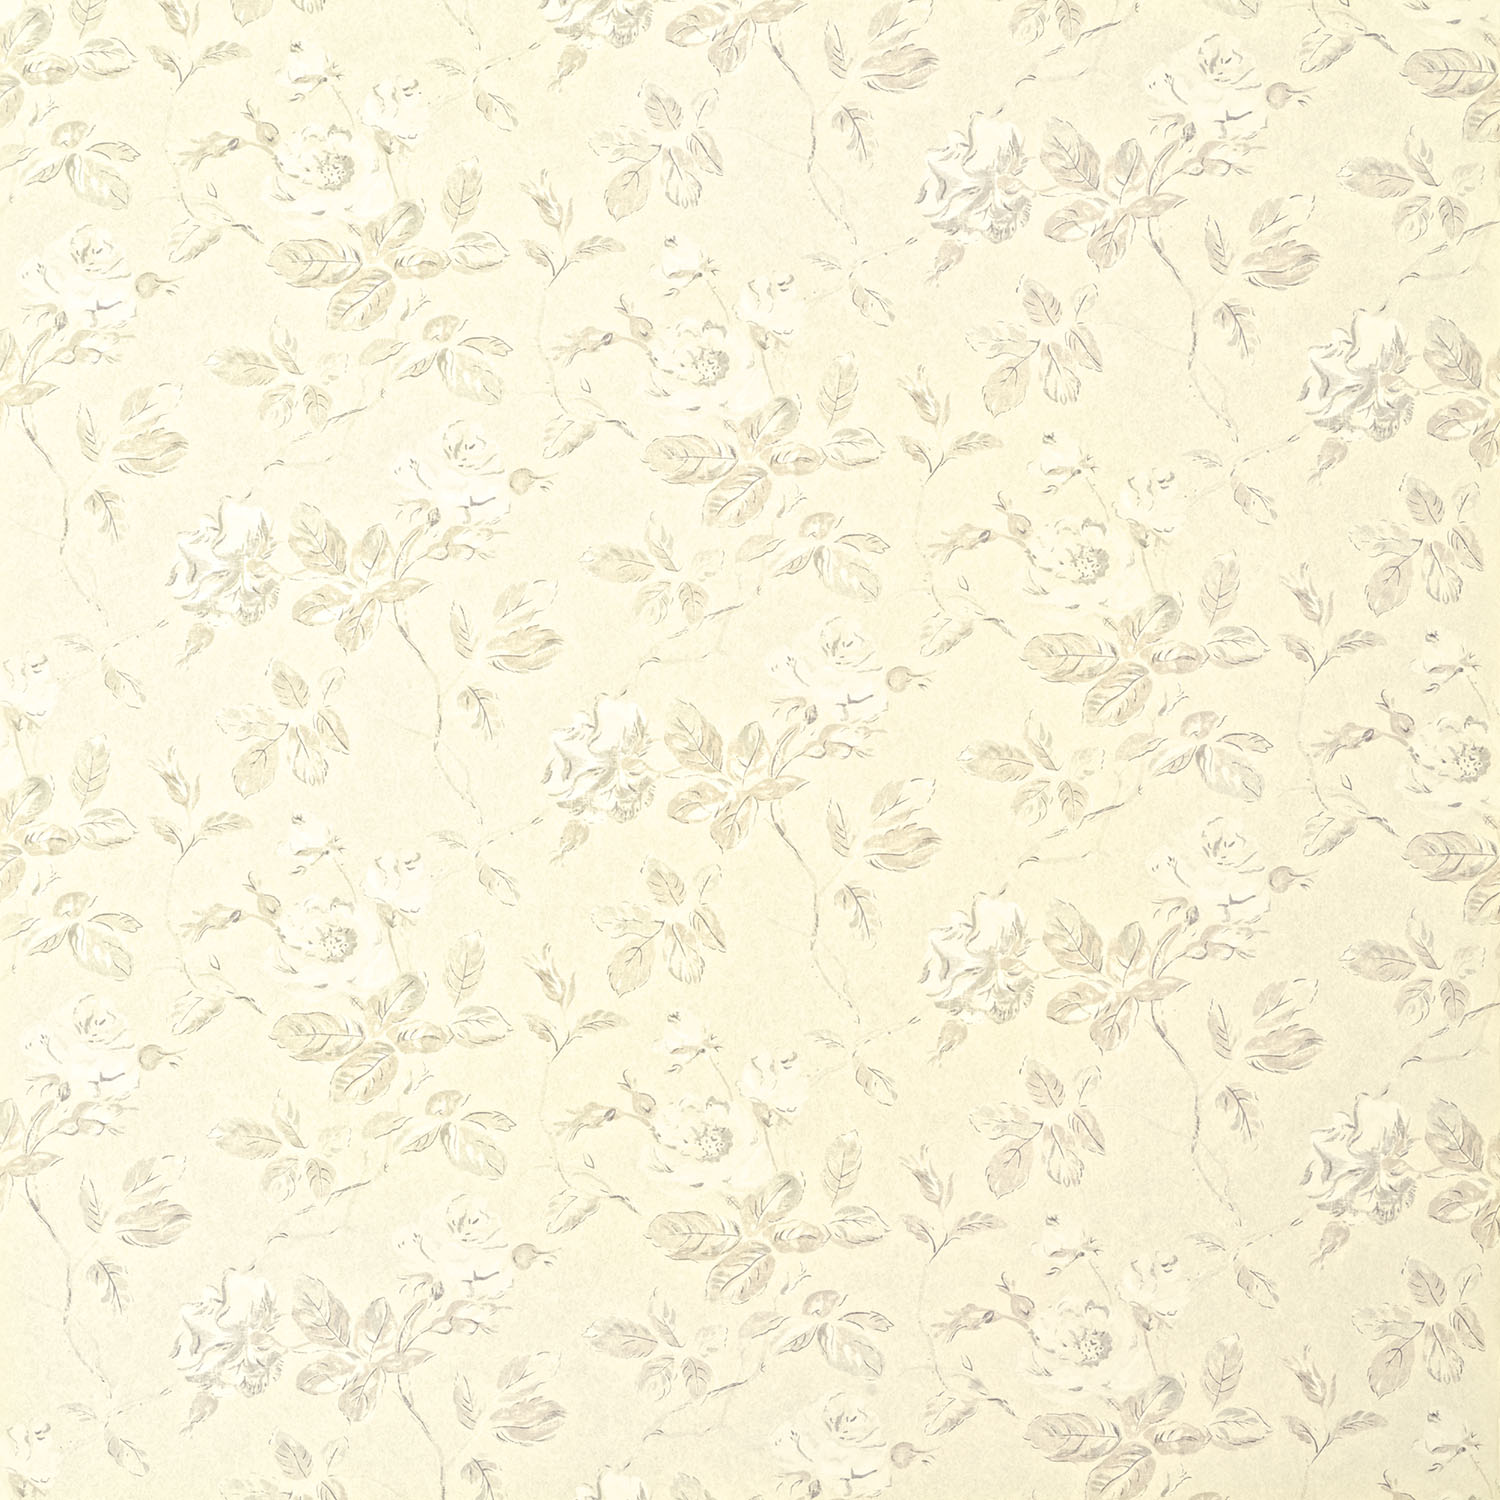 <p><strong>MARLOW</strong>taupe/white/cream 980-04<a href=/collection-3/marlow-taupe-white-cream-980-04>More →</a></p>